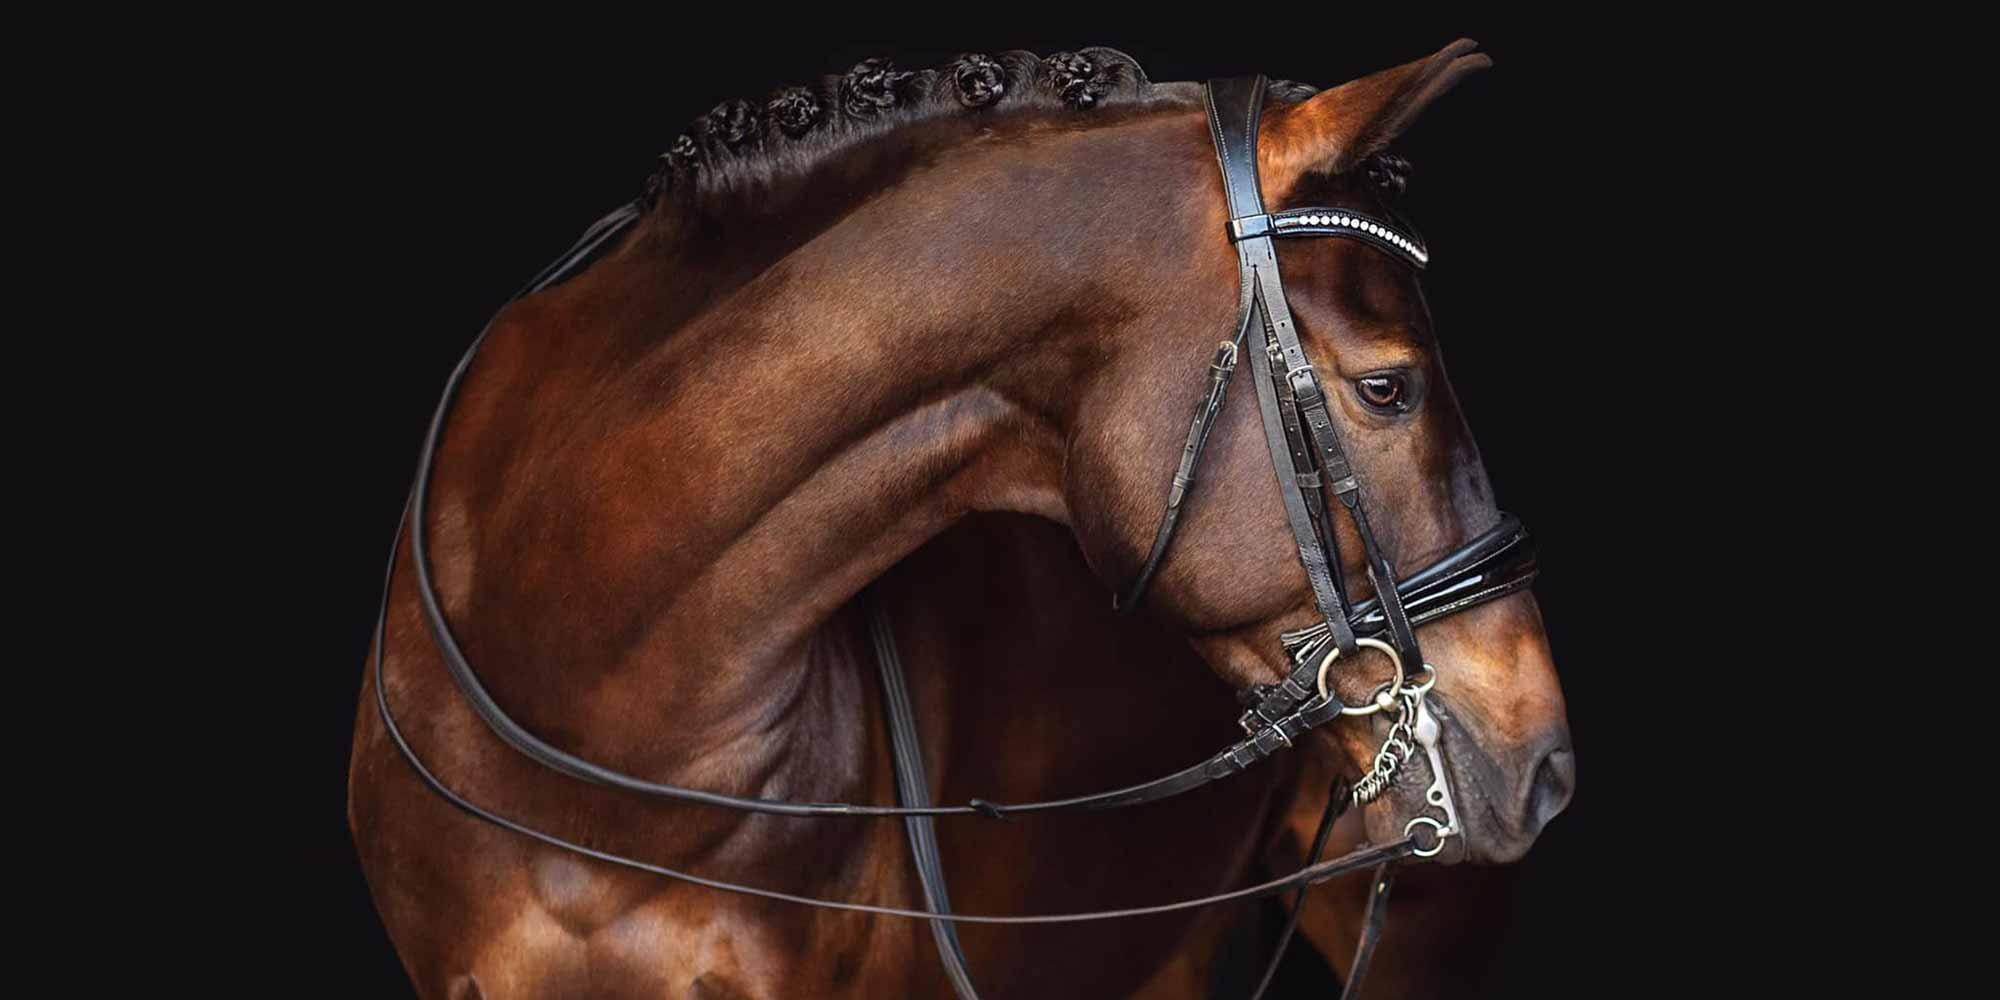 EQ Graphics | Sport Horse Photography Head Shot with Black Background